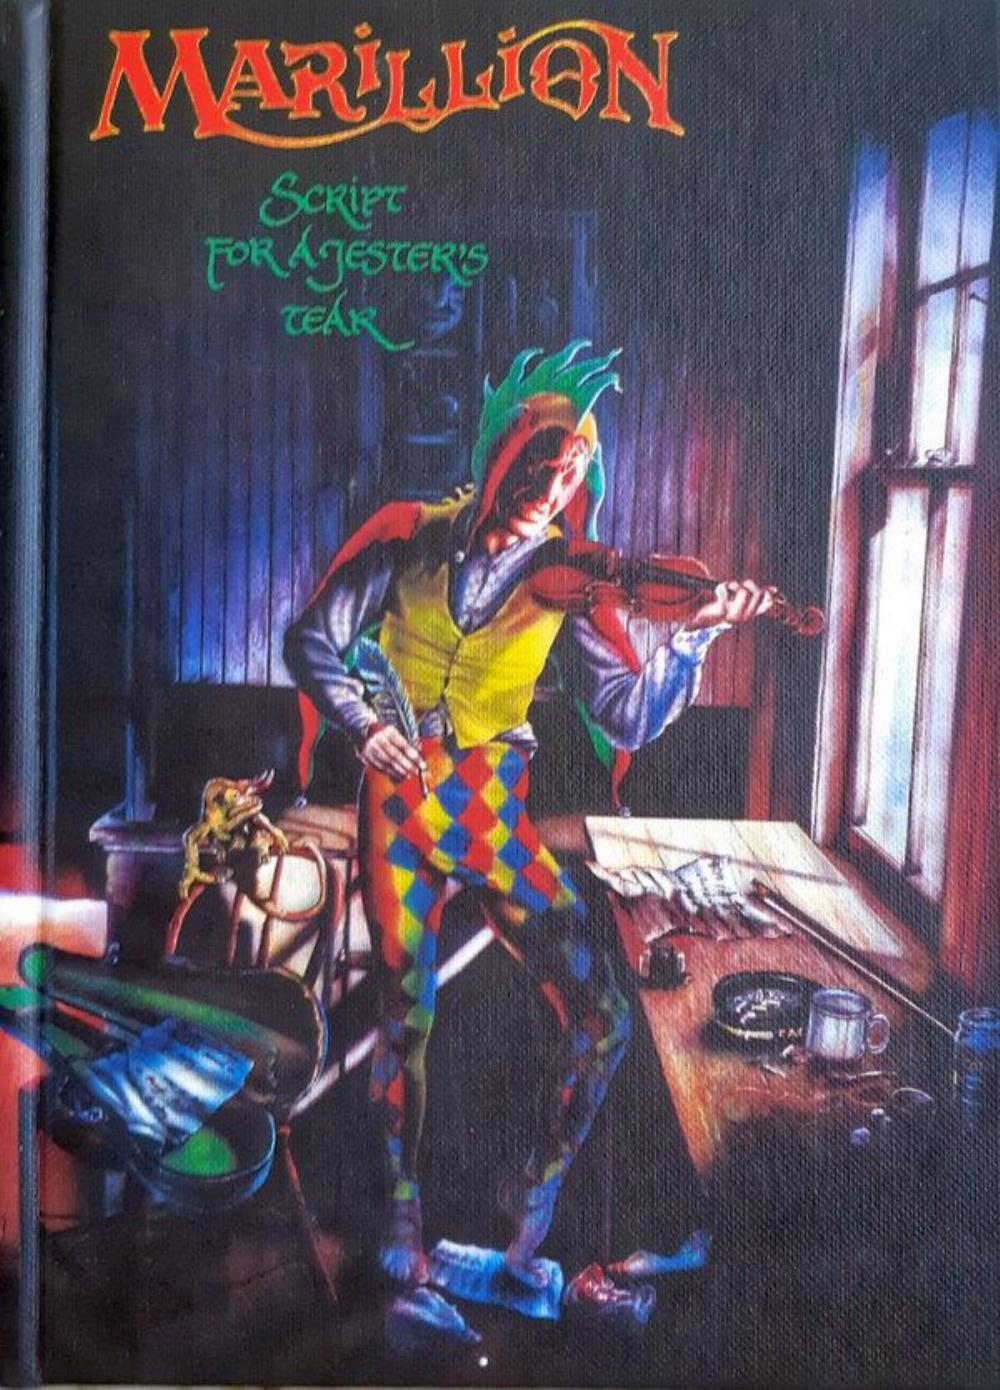 Script For A Jester's Tear (2020 Limited Deluxe Edition) by MARILLION album cover